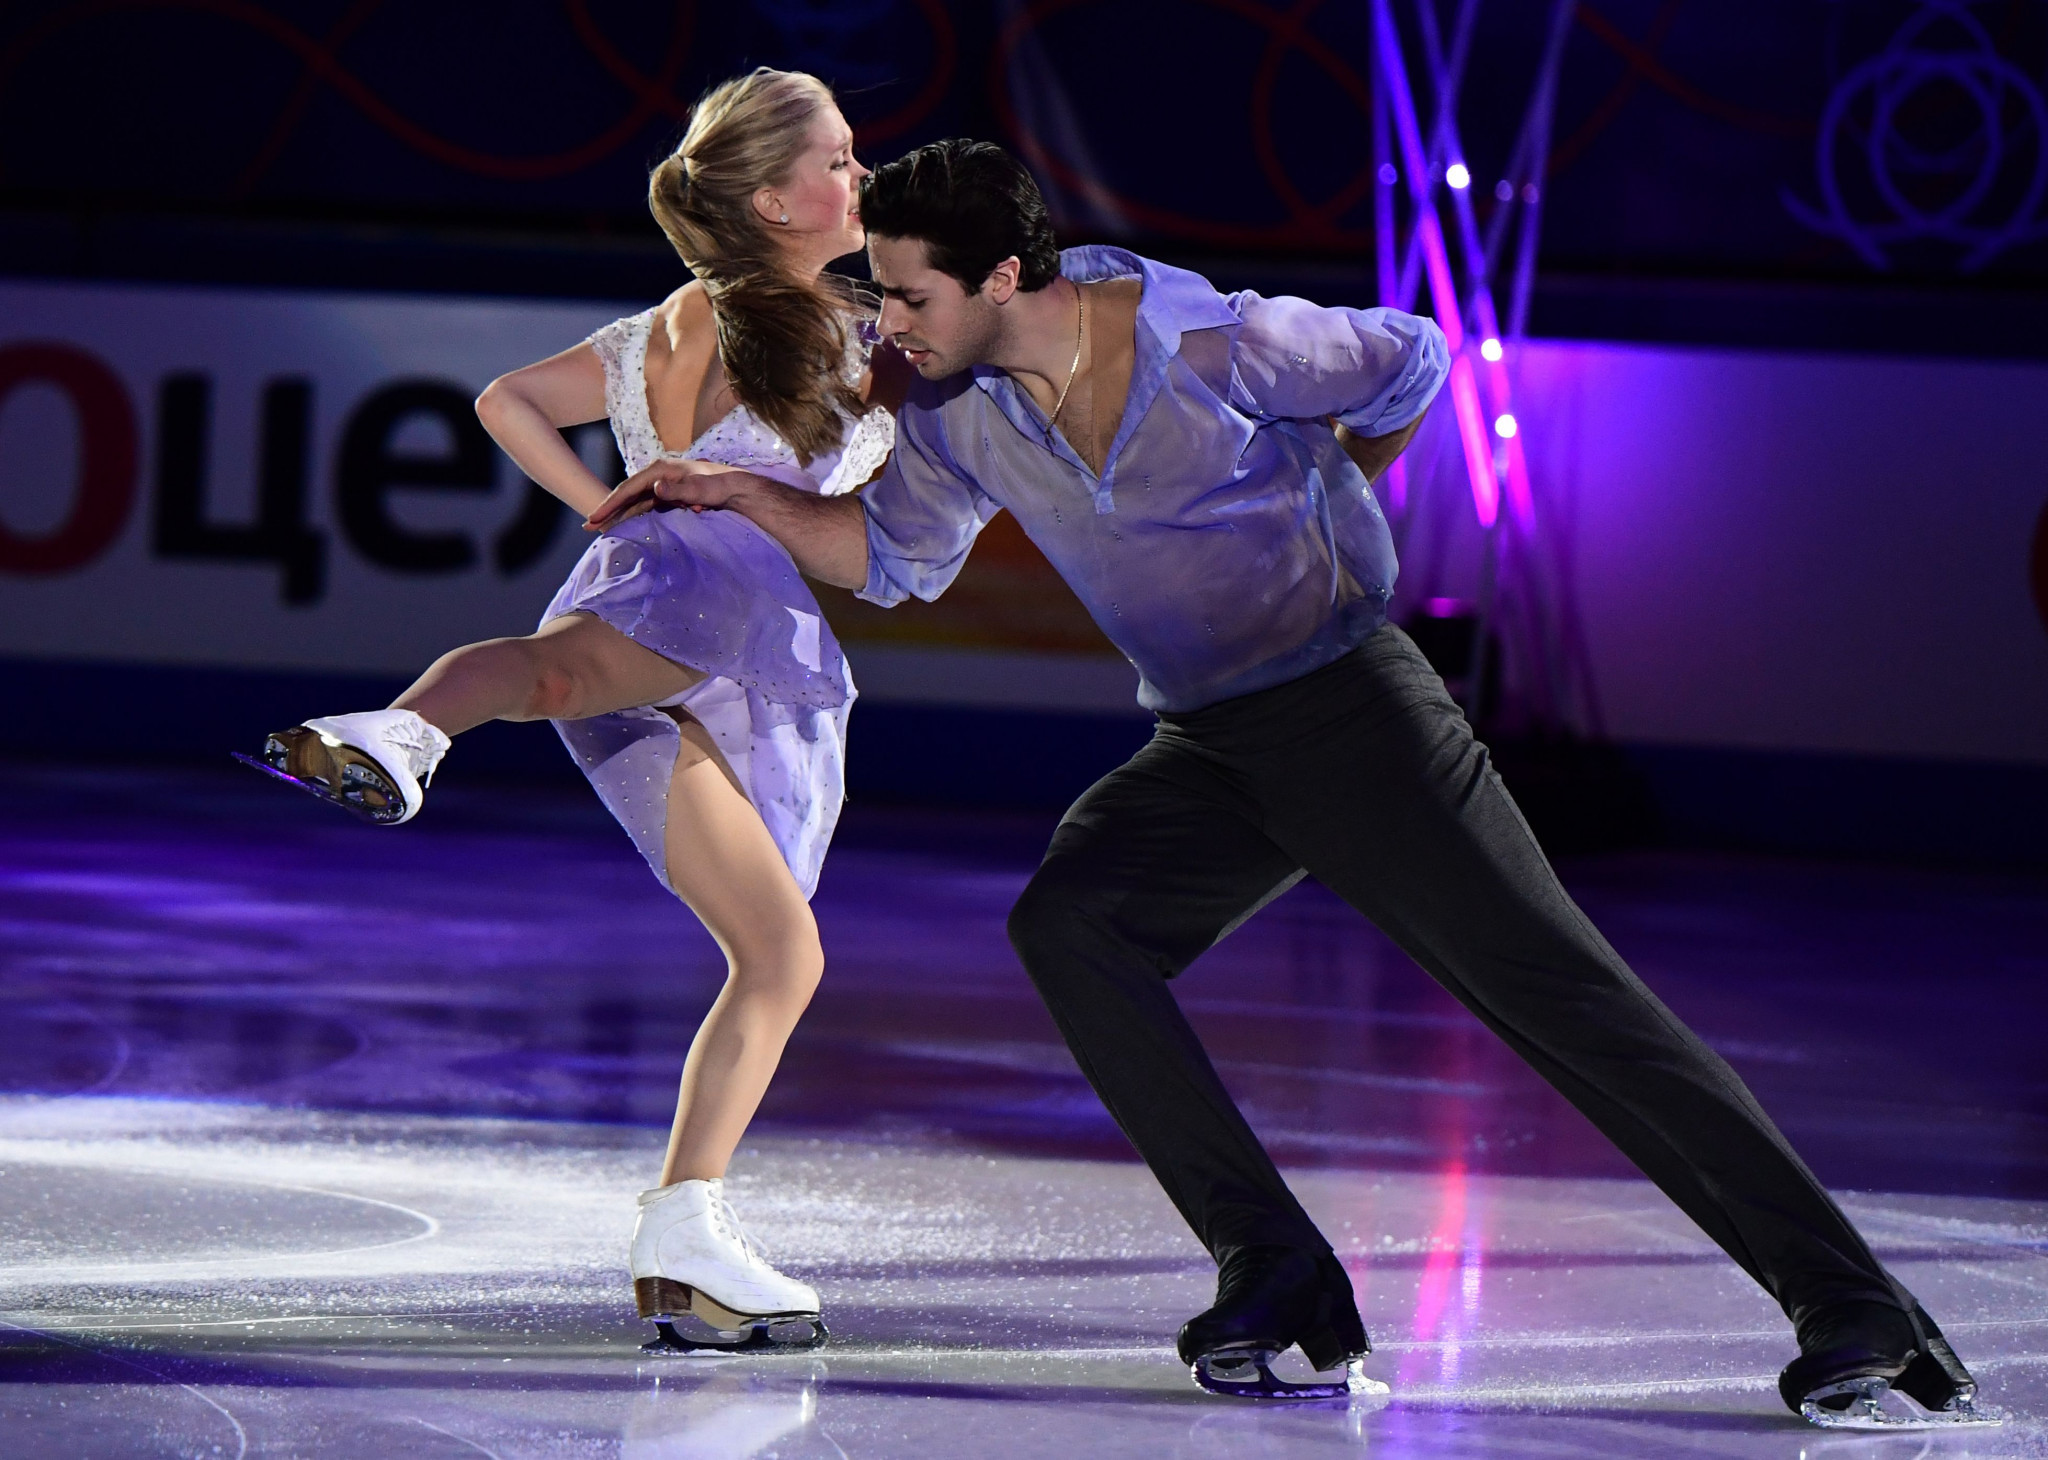 World Championship medallists Poje and Weaver to skip ISU Grand Prix of Figure Skating season